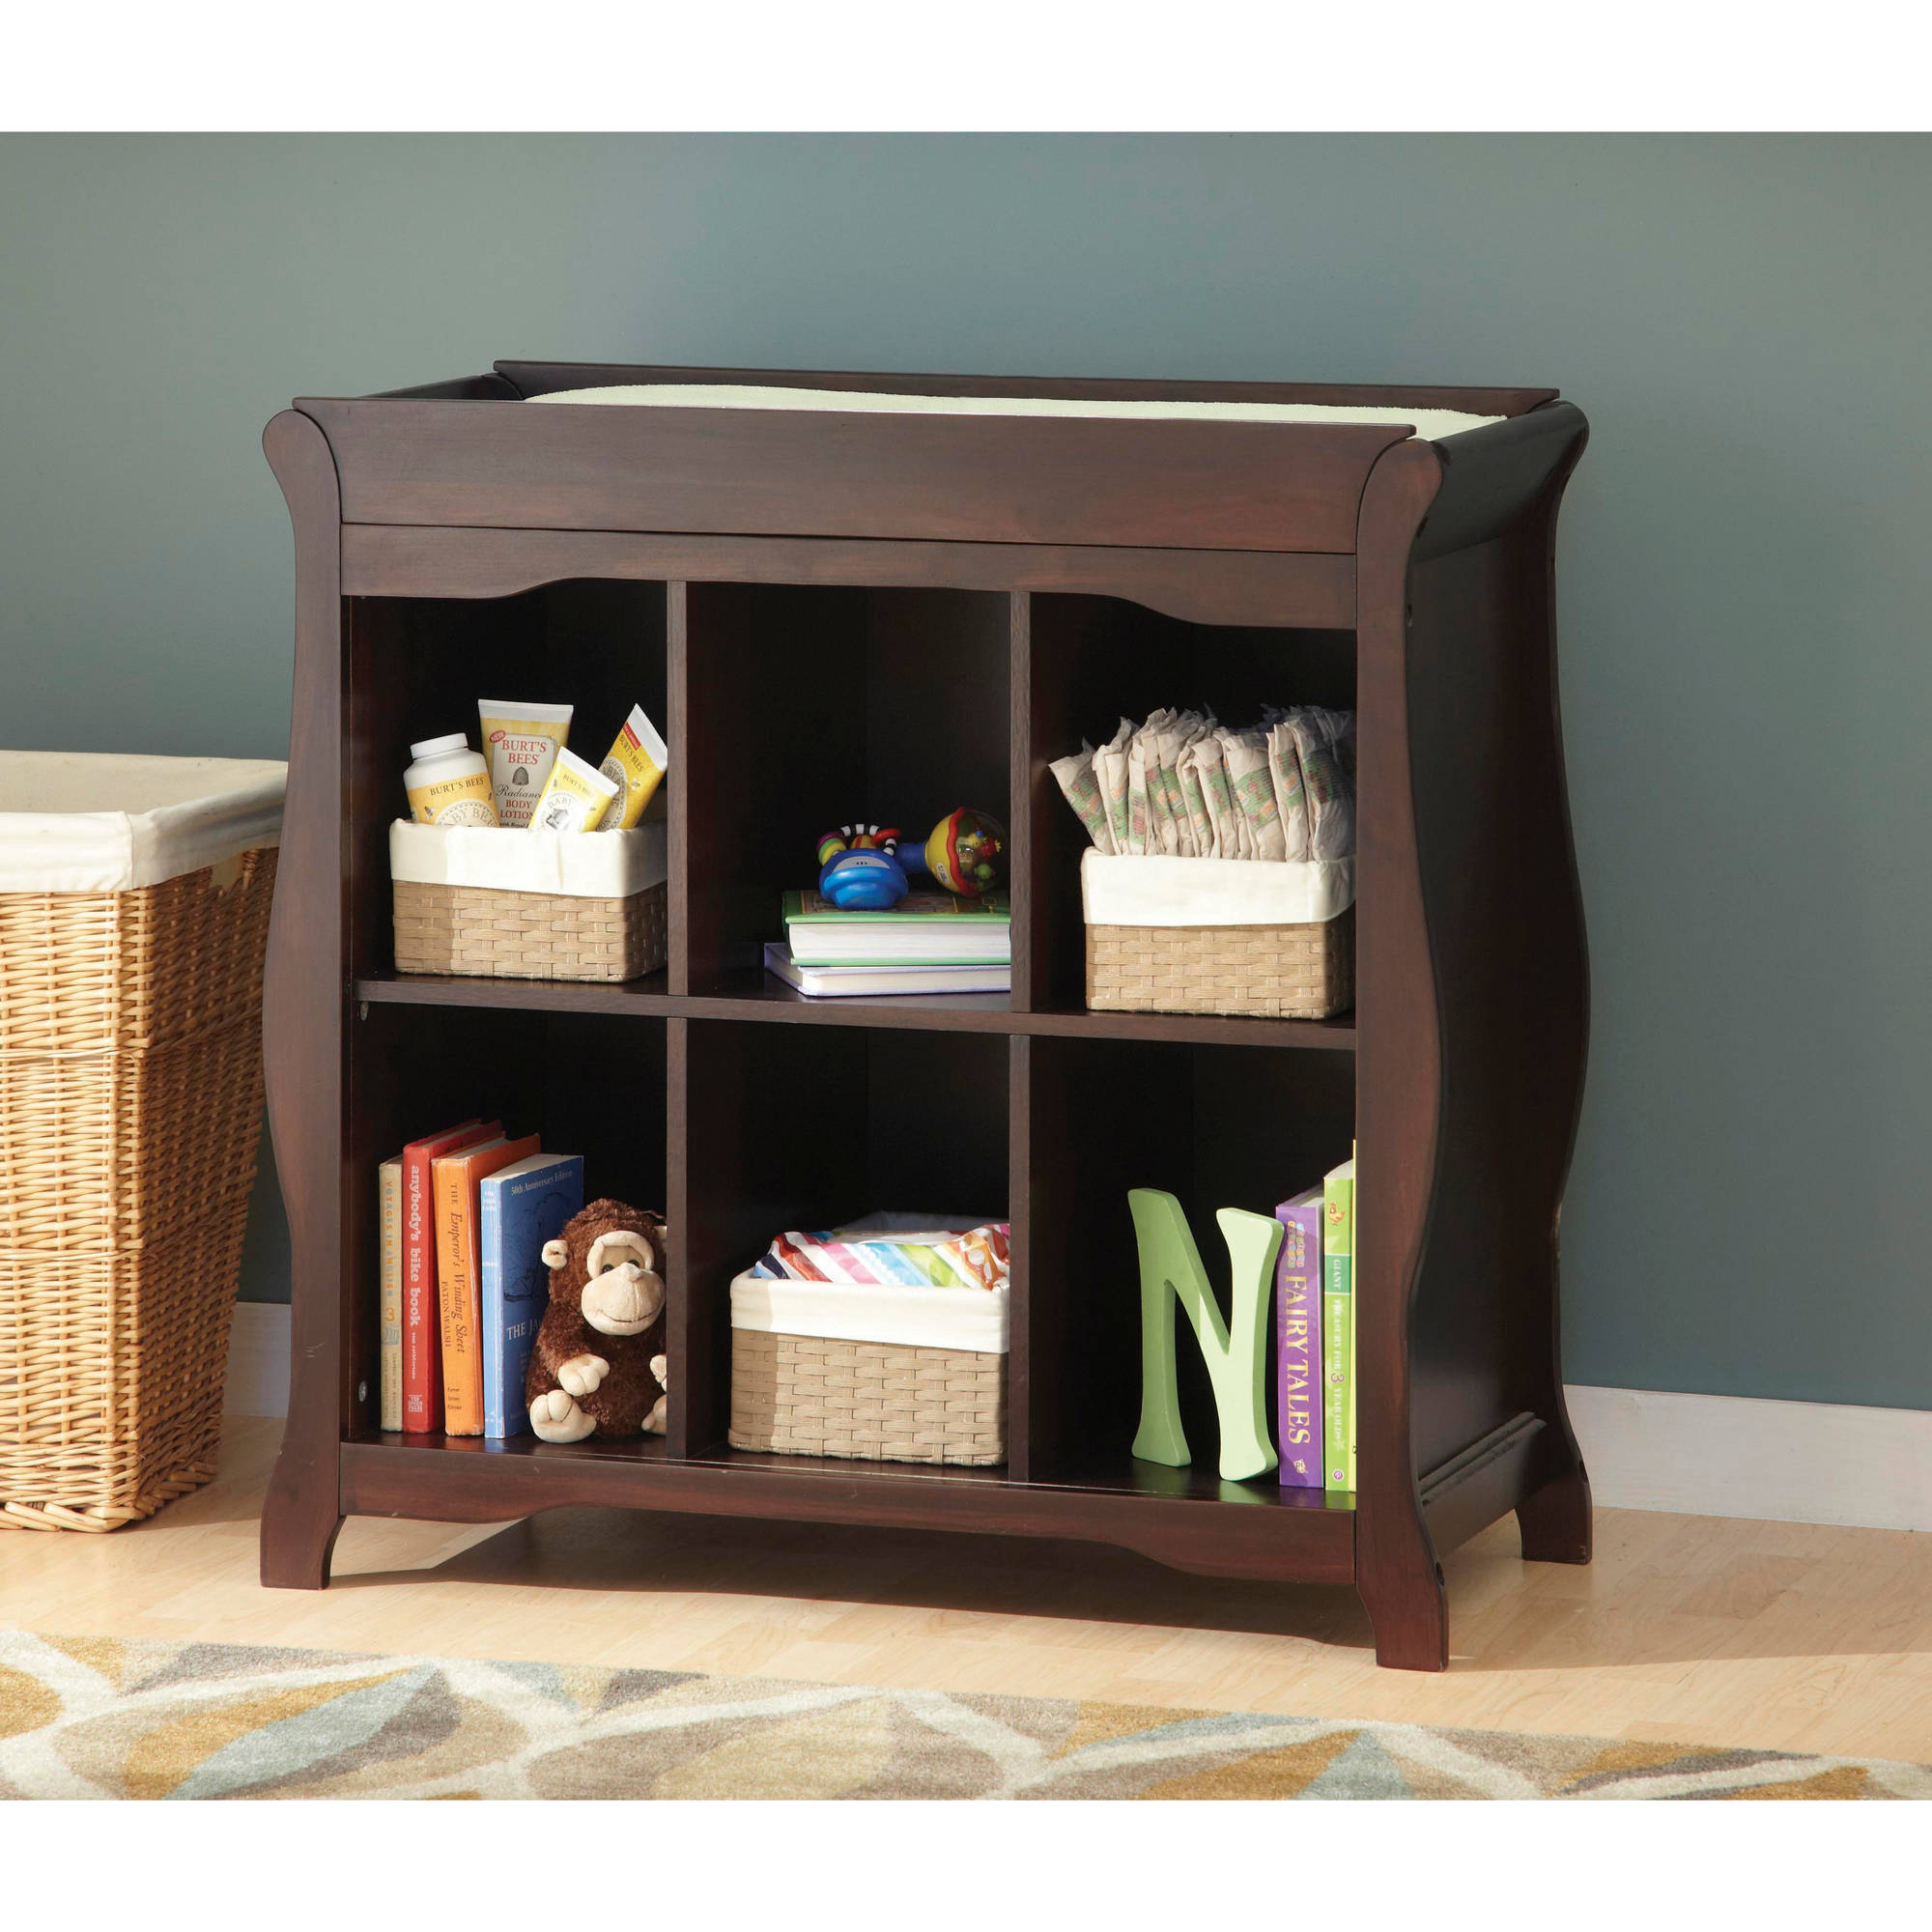 Storkcraft Aspen 6-Cube Organizer and Changing Table, Espresso